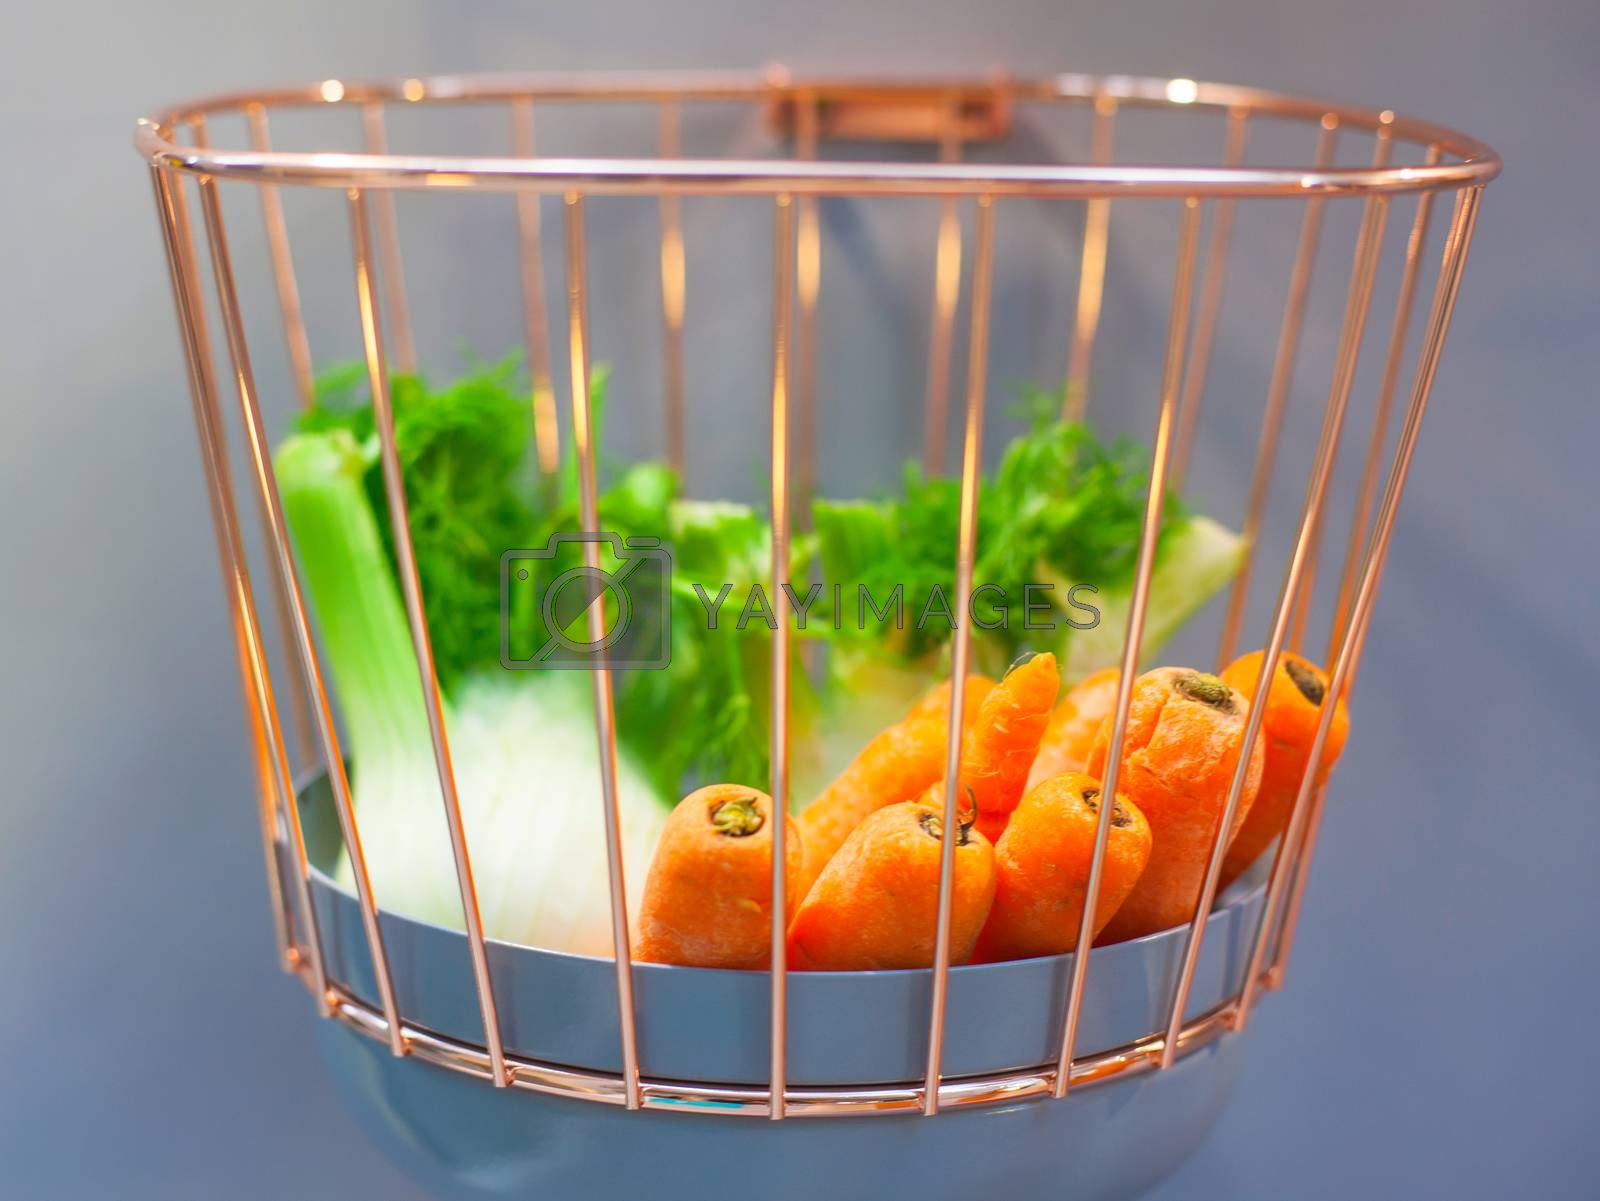 View of Fennels and carrots inside the iron basket